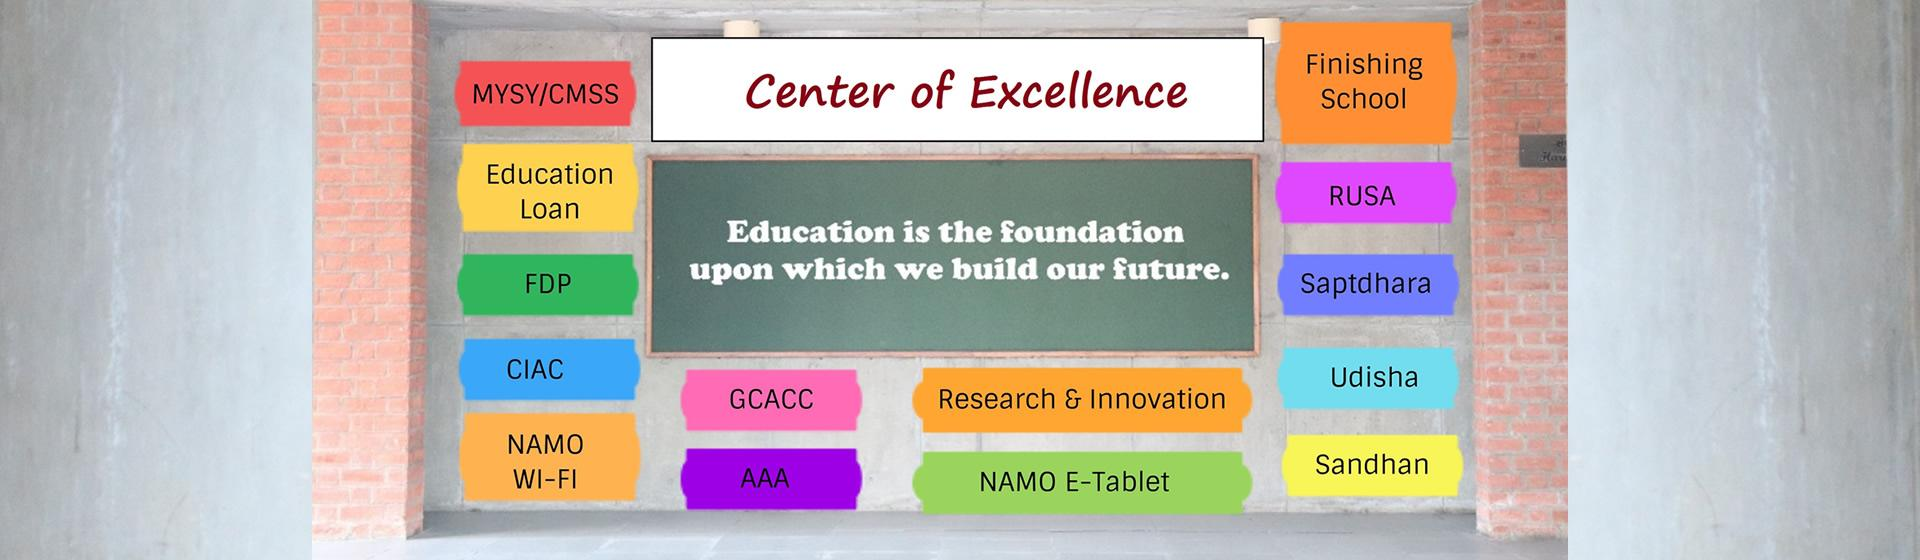 Centre of Excellence KCG Banner